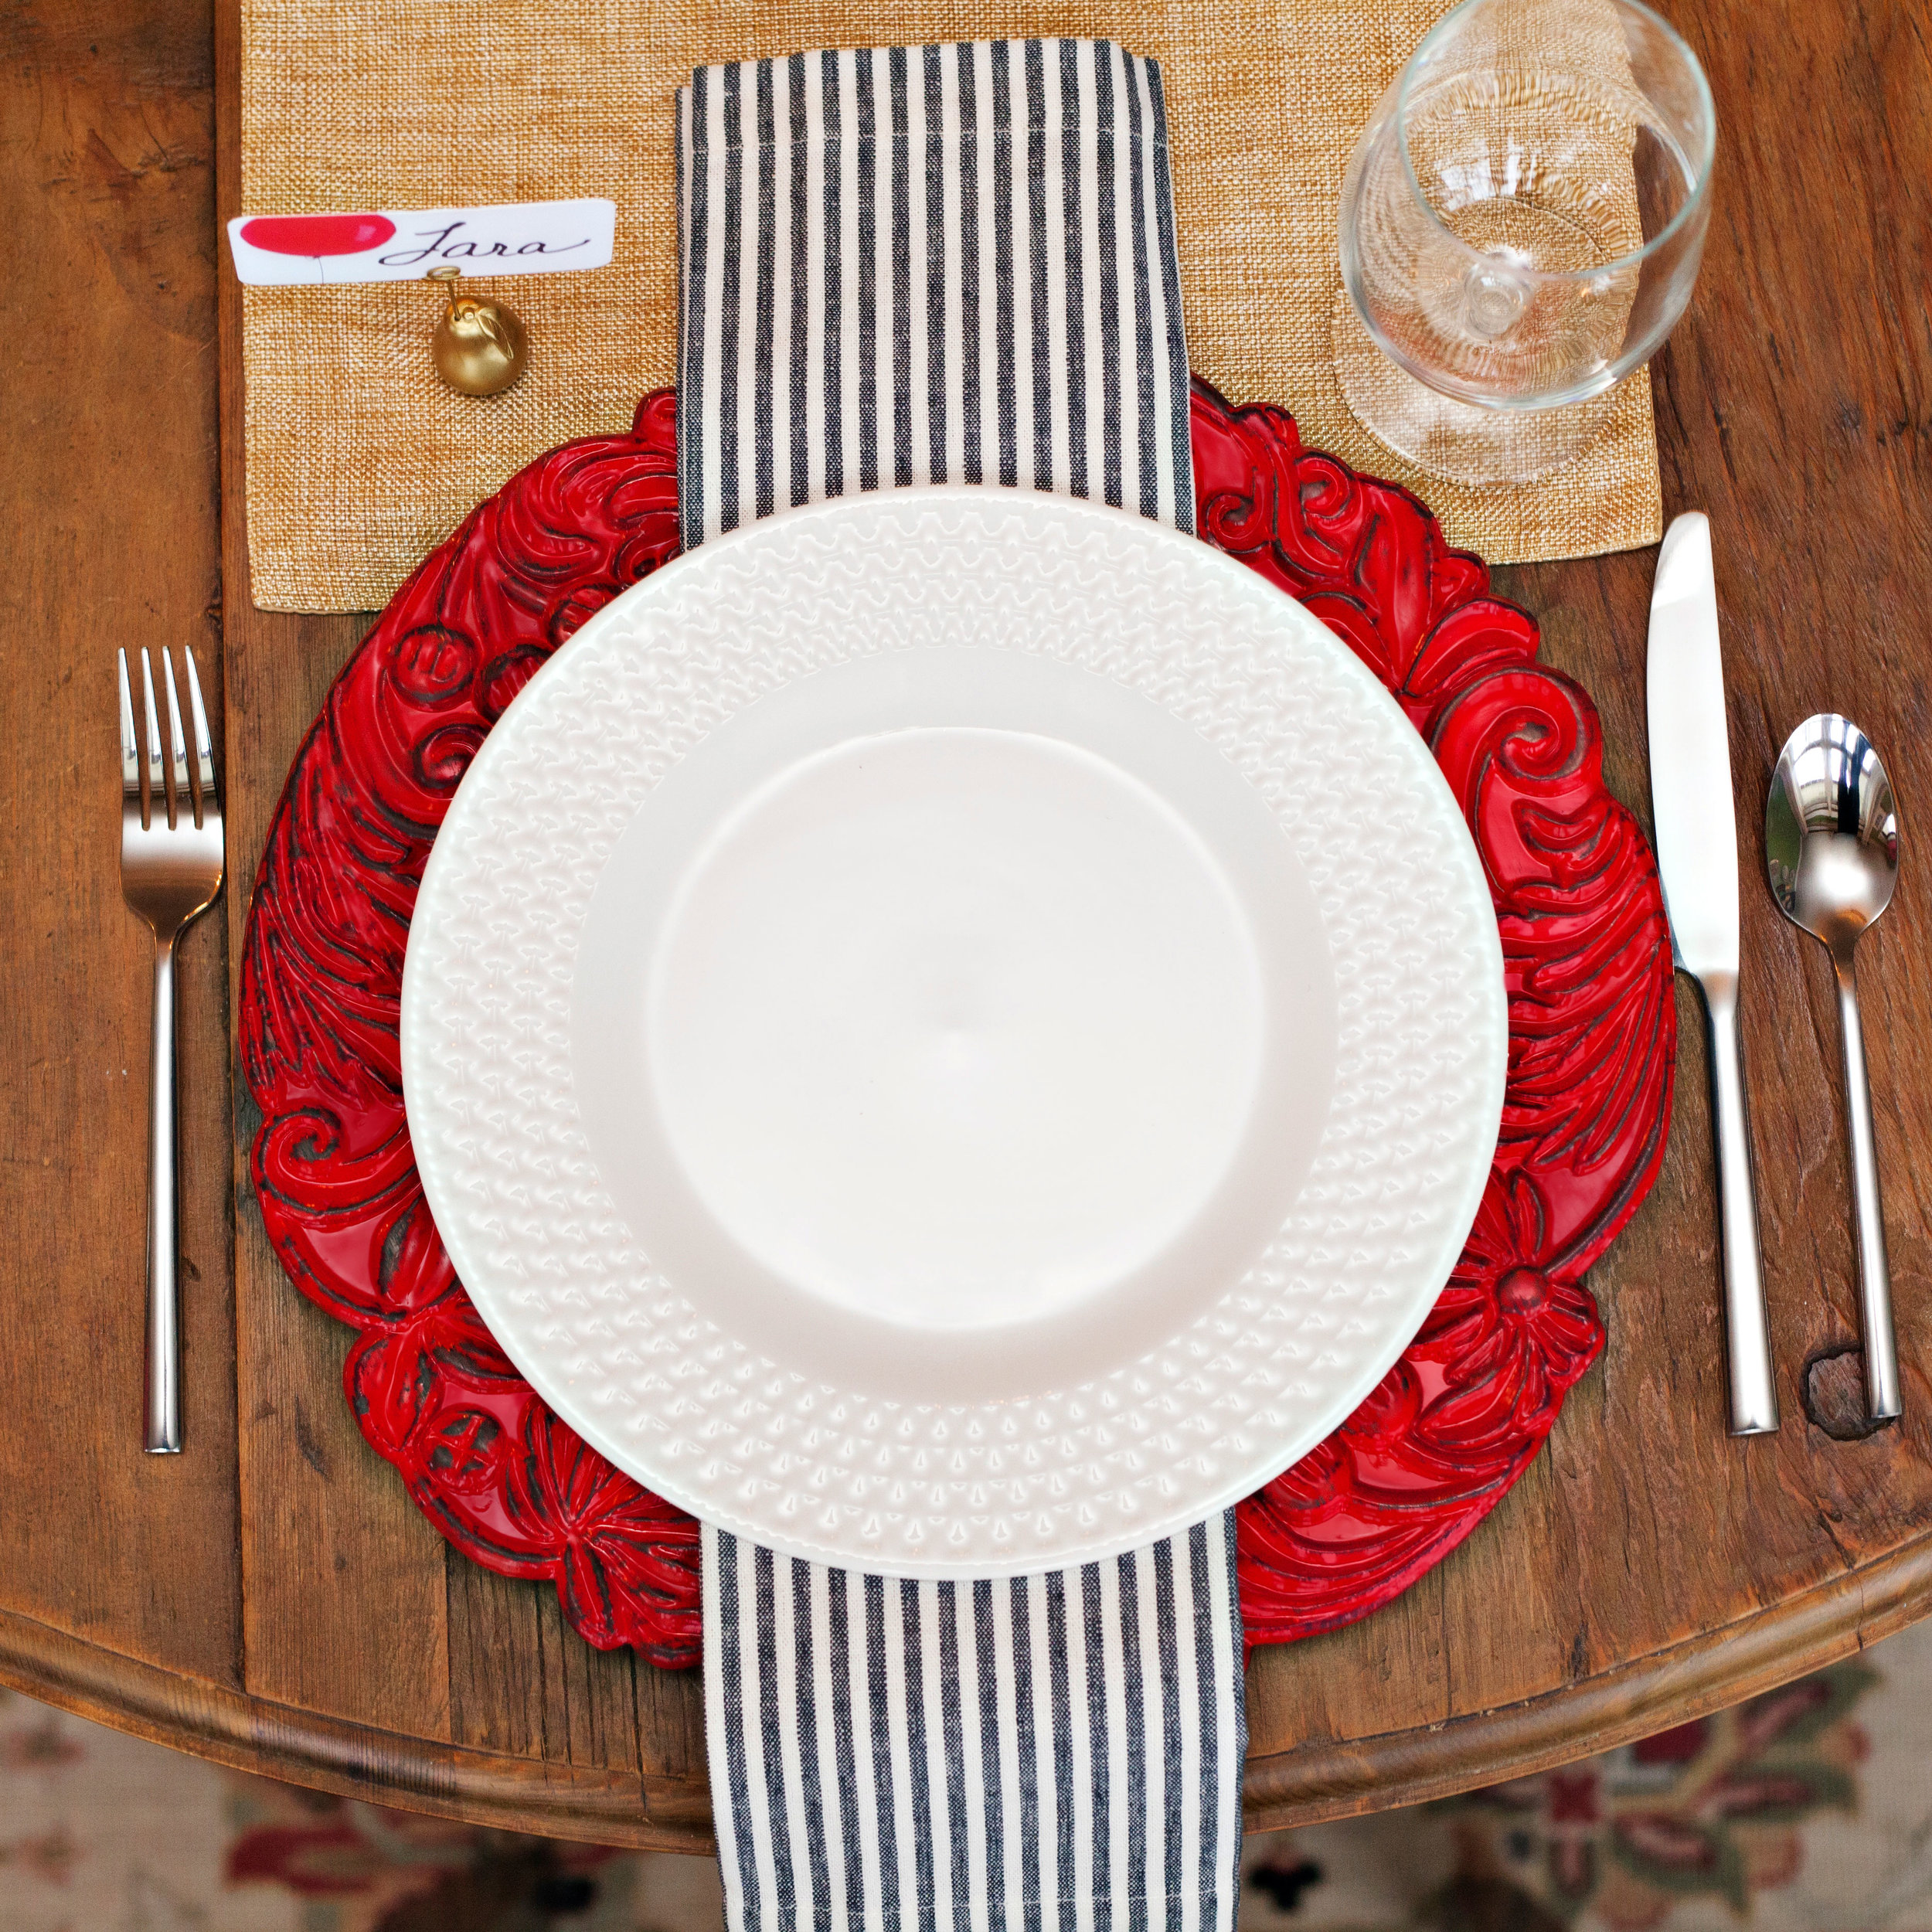 Up Up and Away - Tablescape Includes:Gold Table Runner, Red Intricate Charger, Plate, Napkin, Place Card Holder, and Place Card$14.99 per tablescapeA cheerful Table Setting to gather at home with your friends and family, accentuated by a red balloon Place Card for your guests to find their seat. This tablescape is a perfect theme for any occasion; birthday, anniversary, 'You Are Special' gatherings for adults and children, alike!